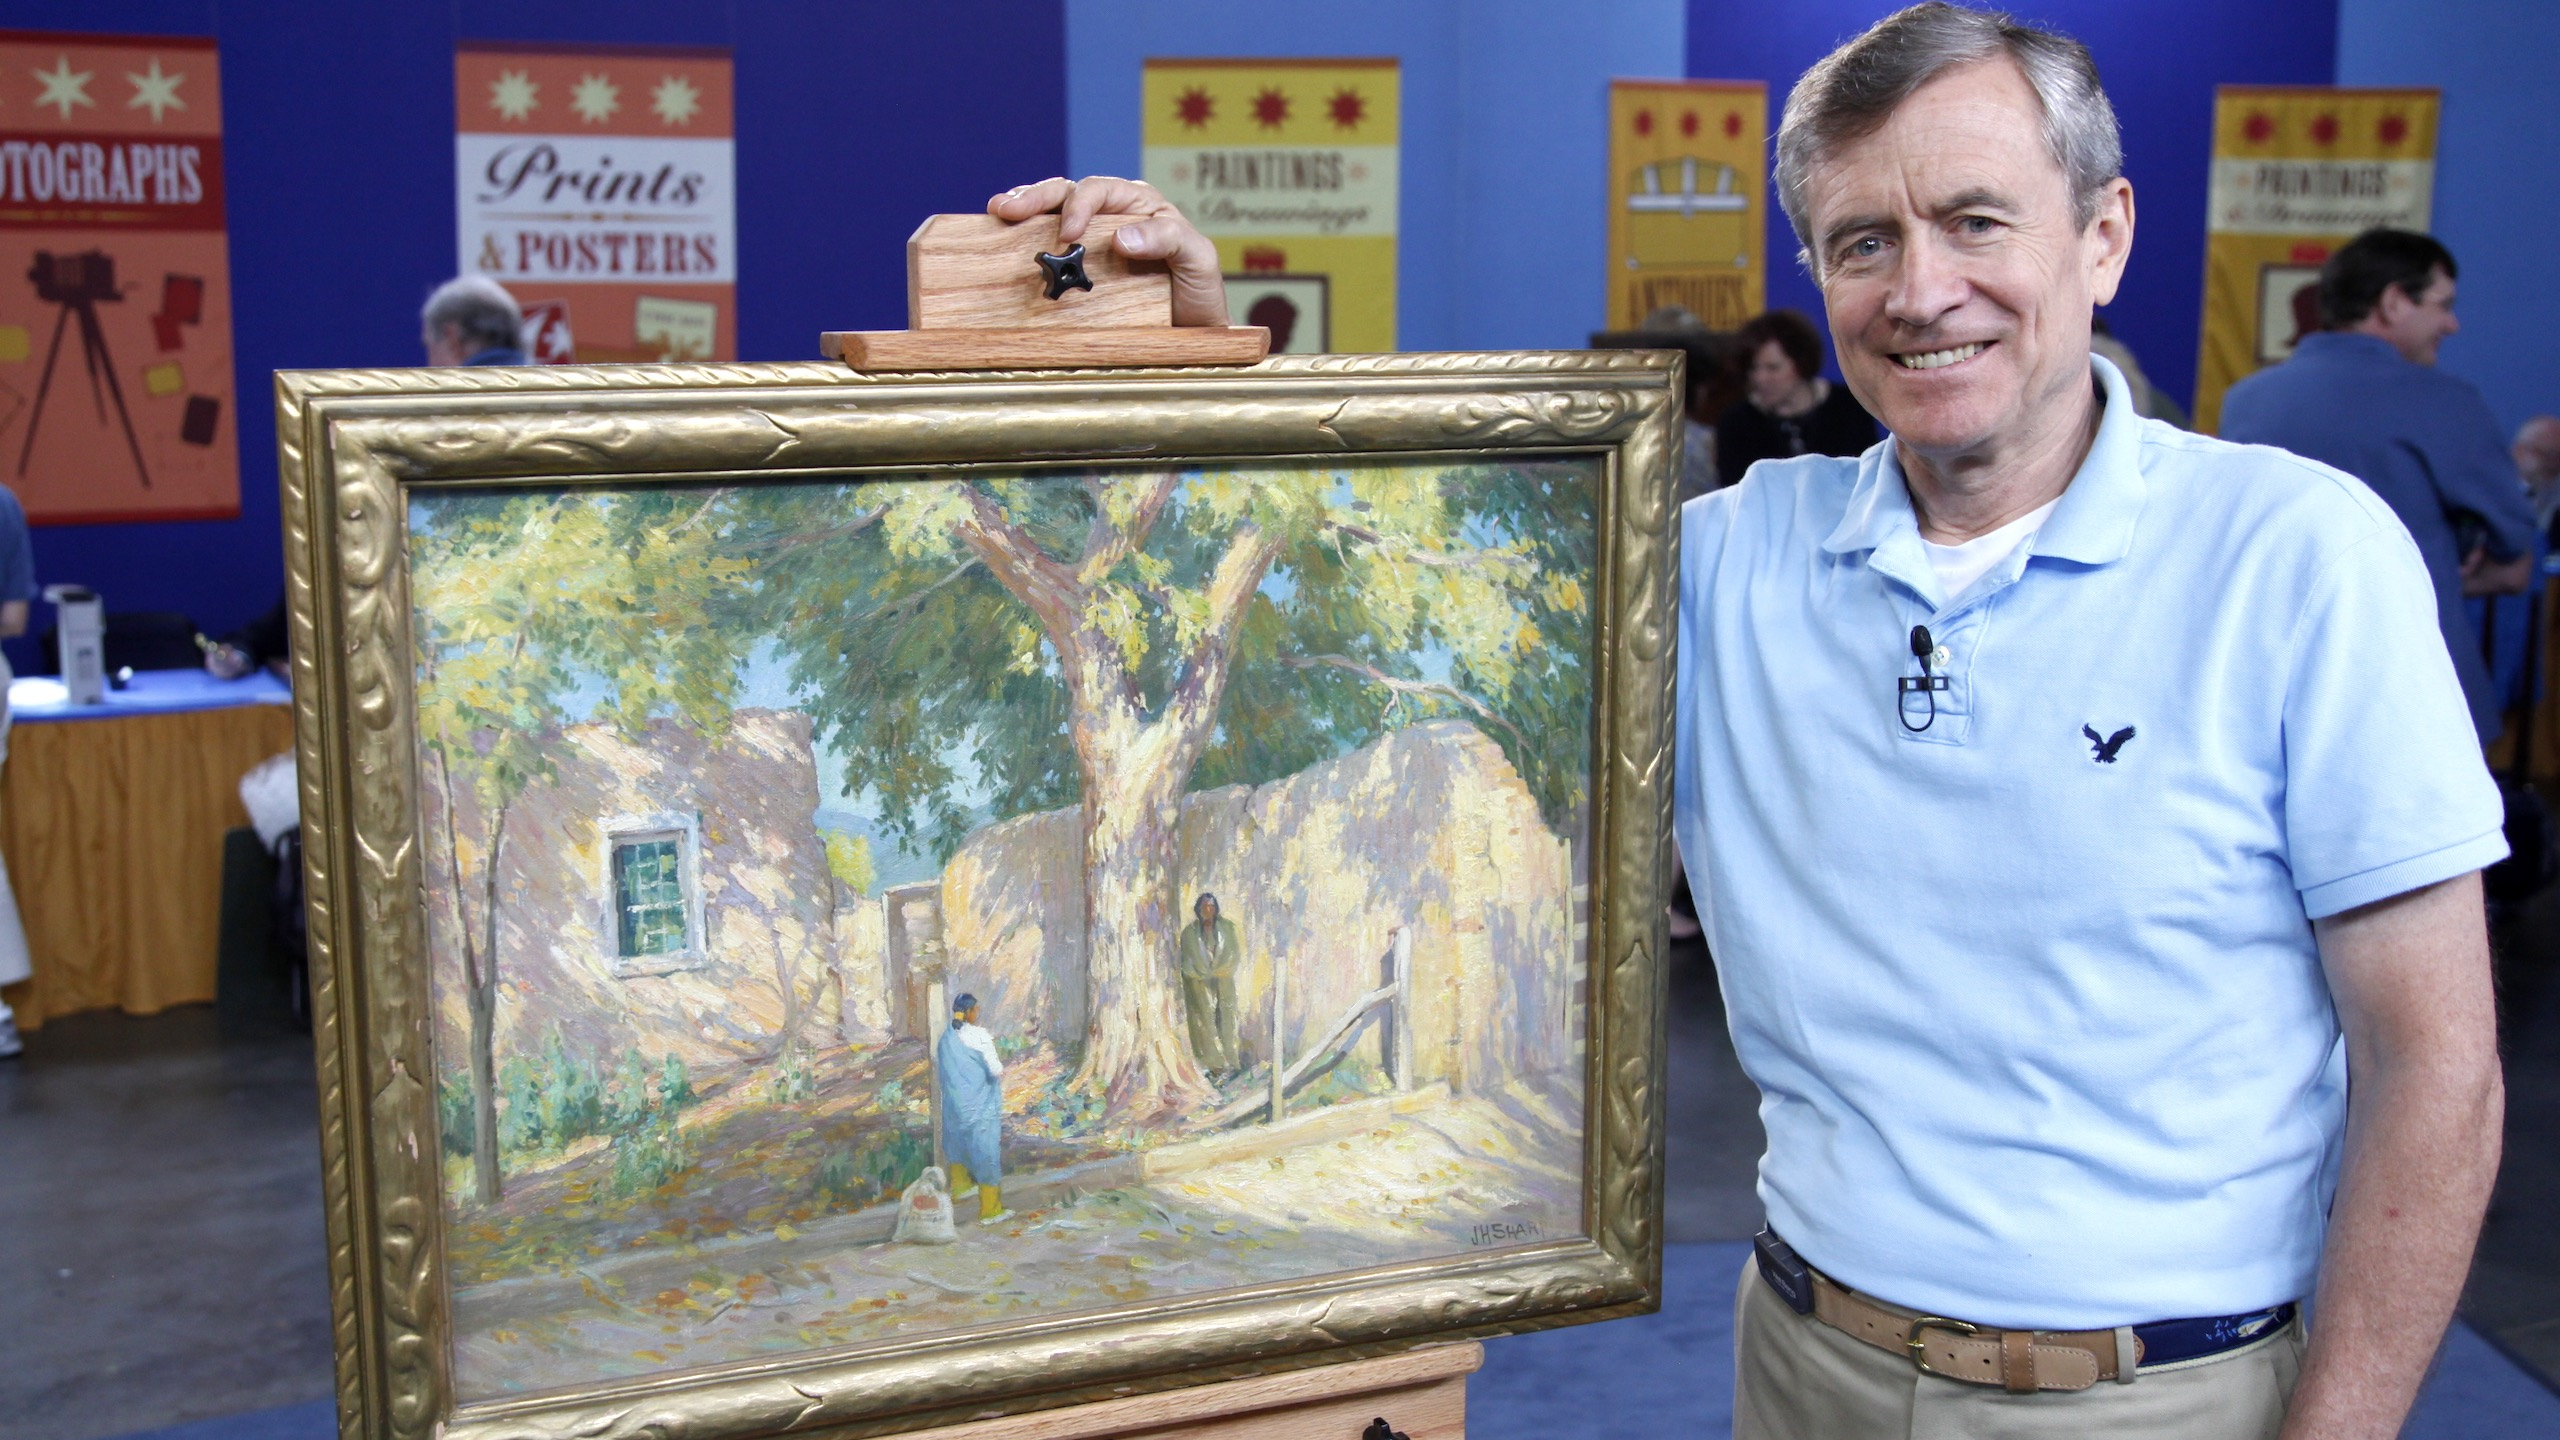 http://www-tc.pbs.org/prod-media/antiques-roadshow/article/images/JHSharp-painting-lede.jpg